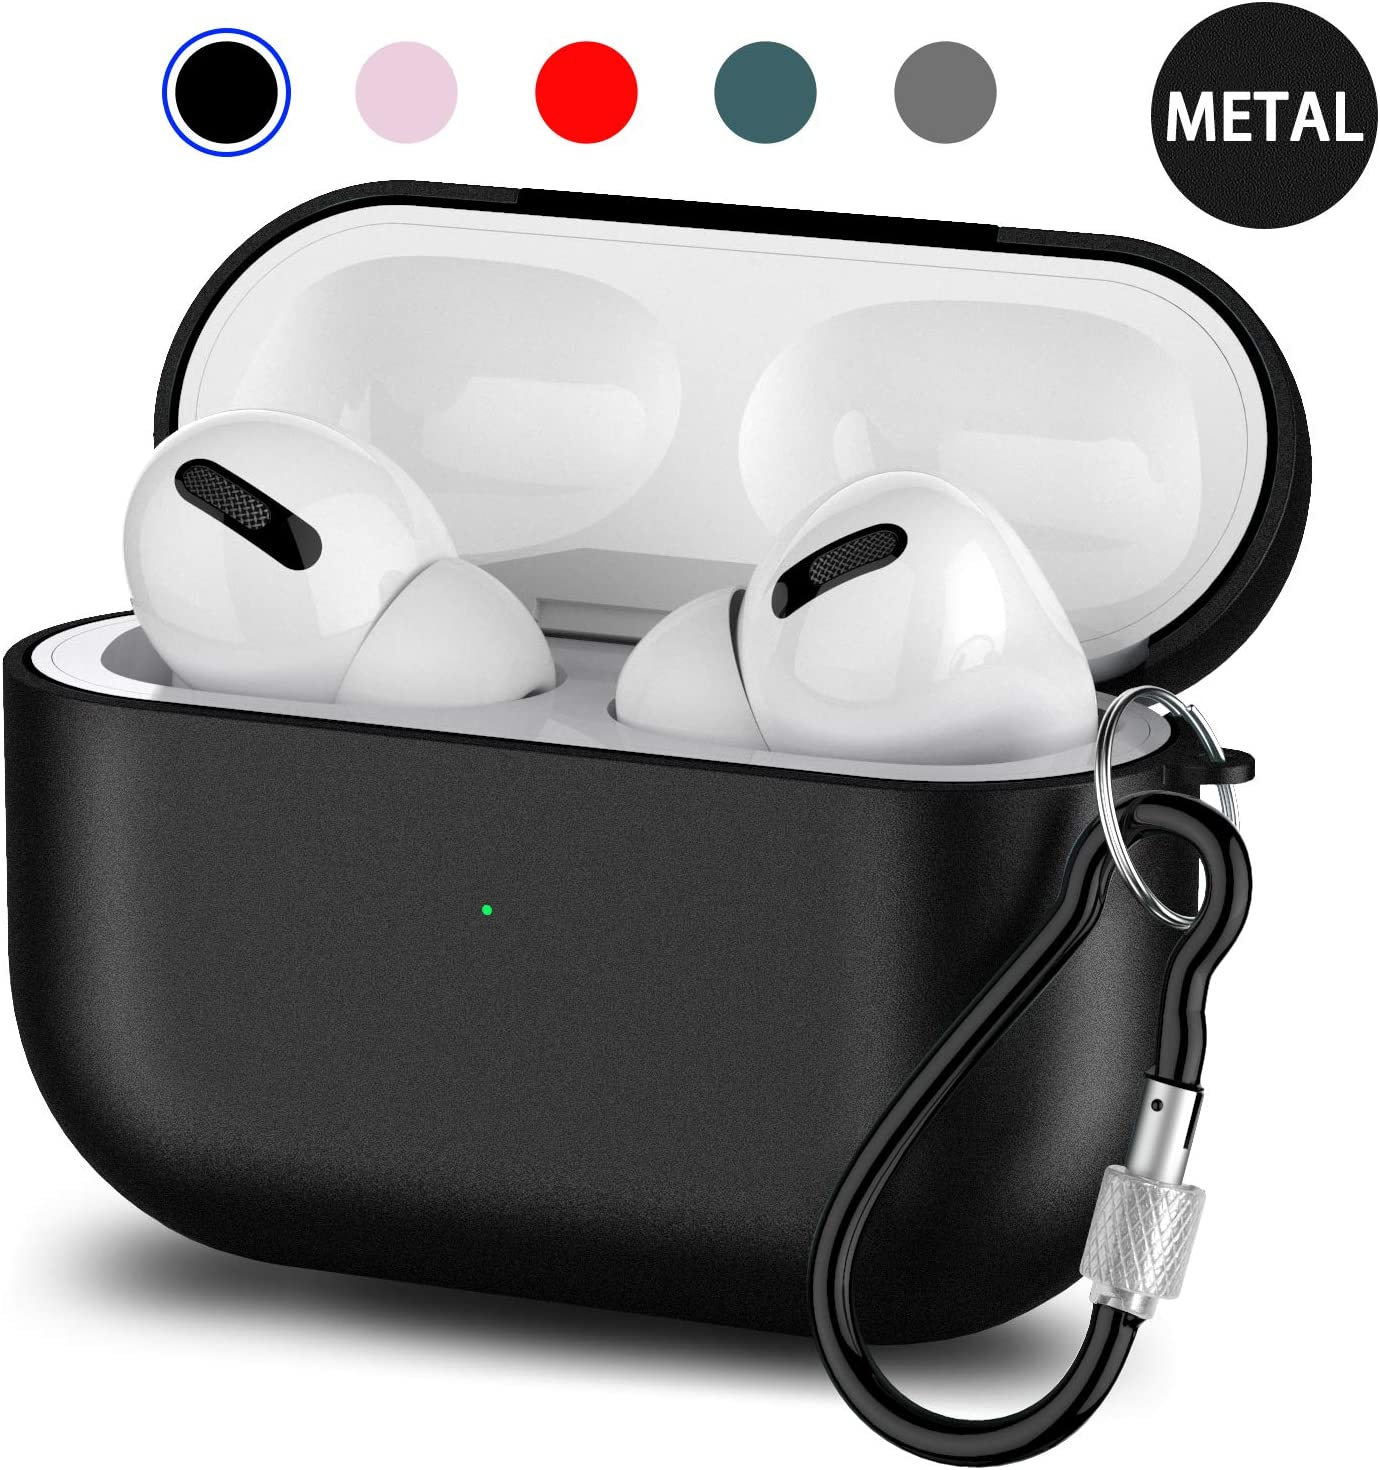 Kekilo Metal Airpods Case 2019 Newest Full Protective Skin Cover Accessories Kits Compatible Airpods Charging Case Ultra Lightweight Dustproof Scratchproof Case for Apple Airpods 1 /& 2 Charging Case Wireles Charge Edition, Red